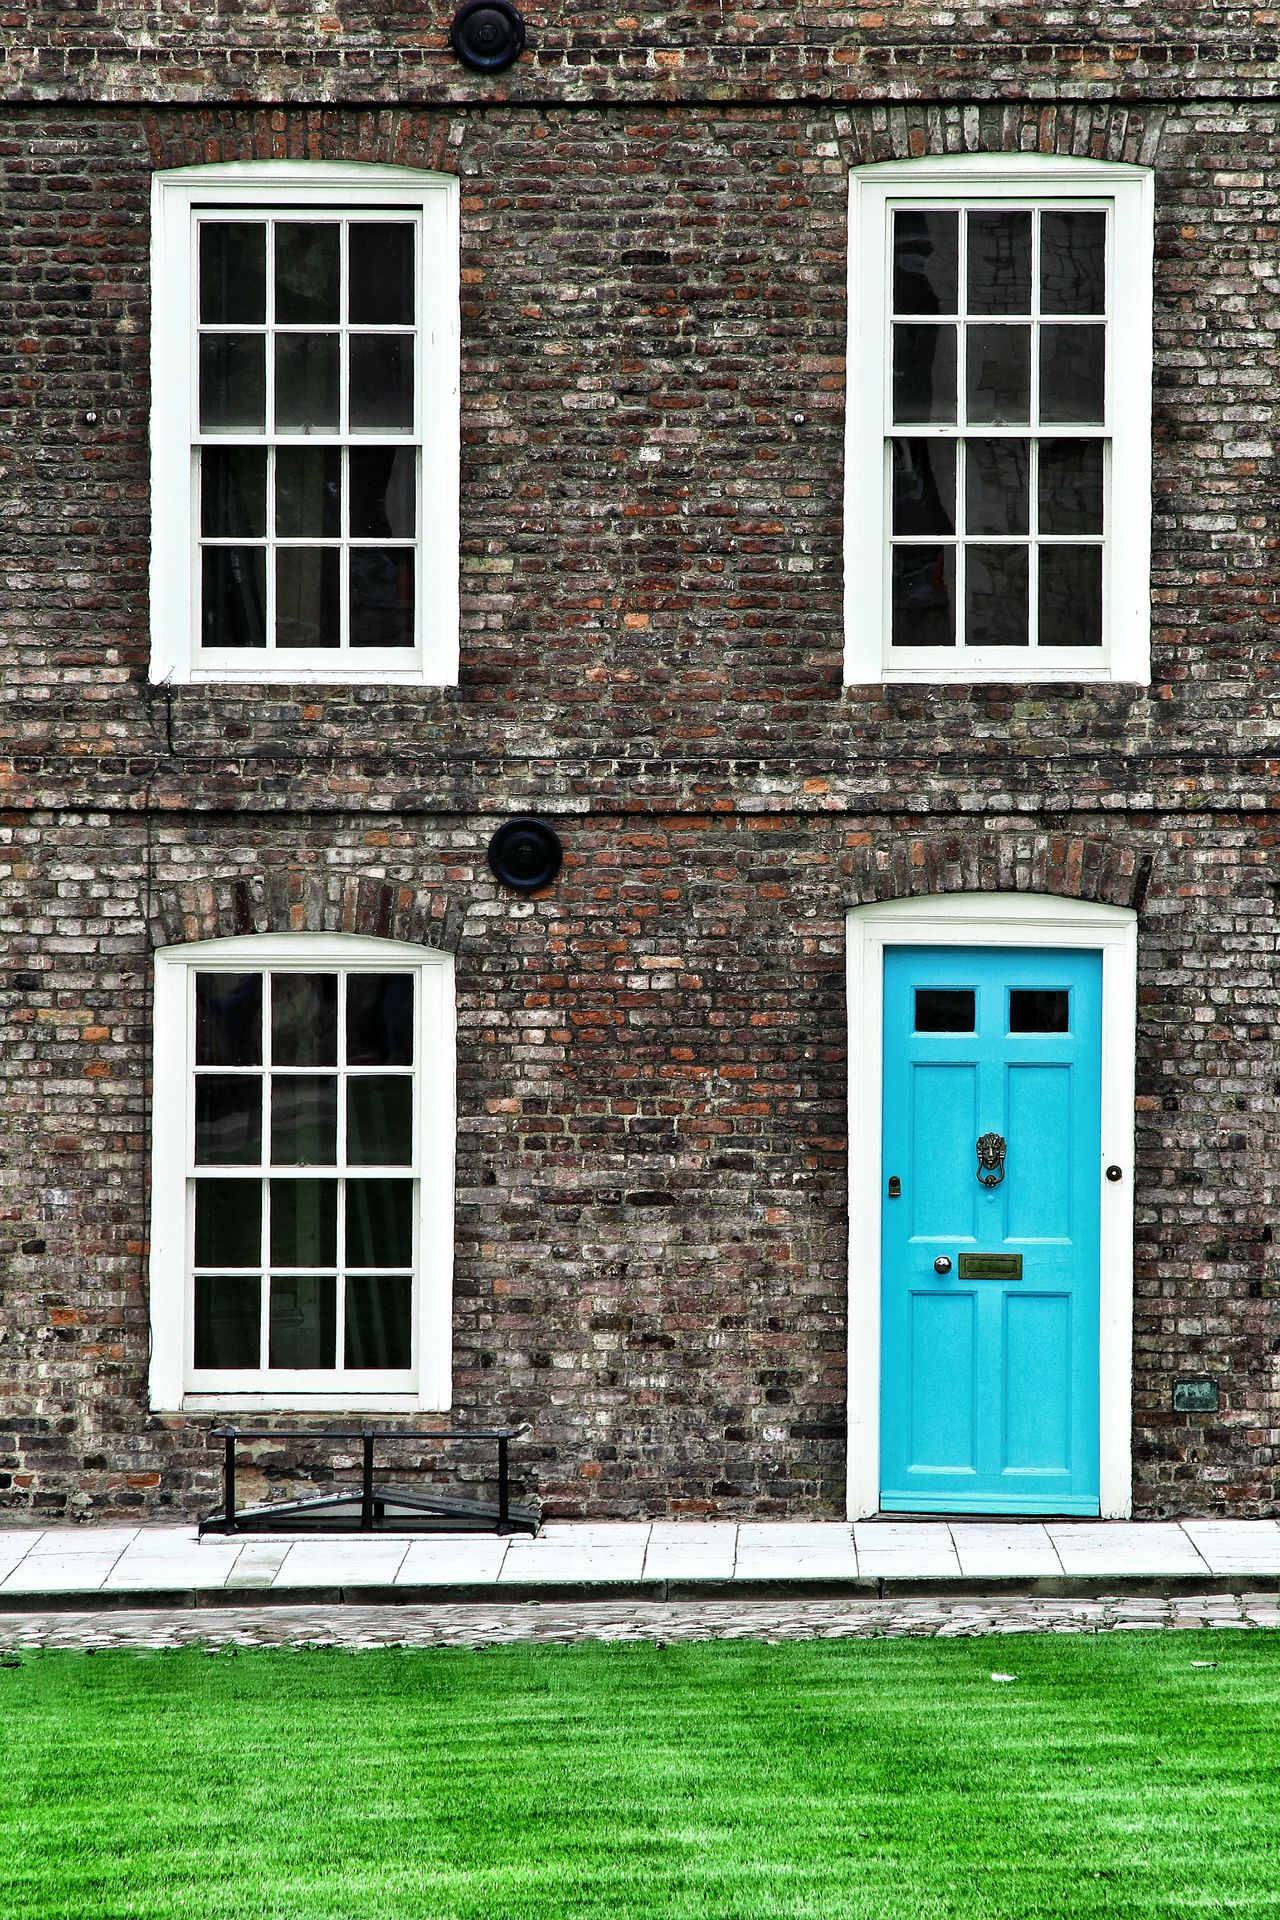 Windows And Doors Window Door Wall Wall - Building Feature Colored Door Tower Of London